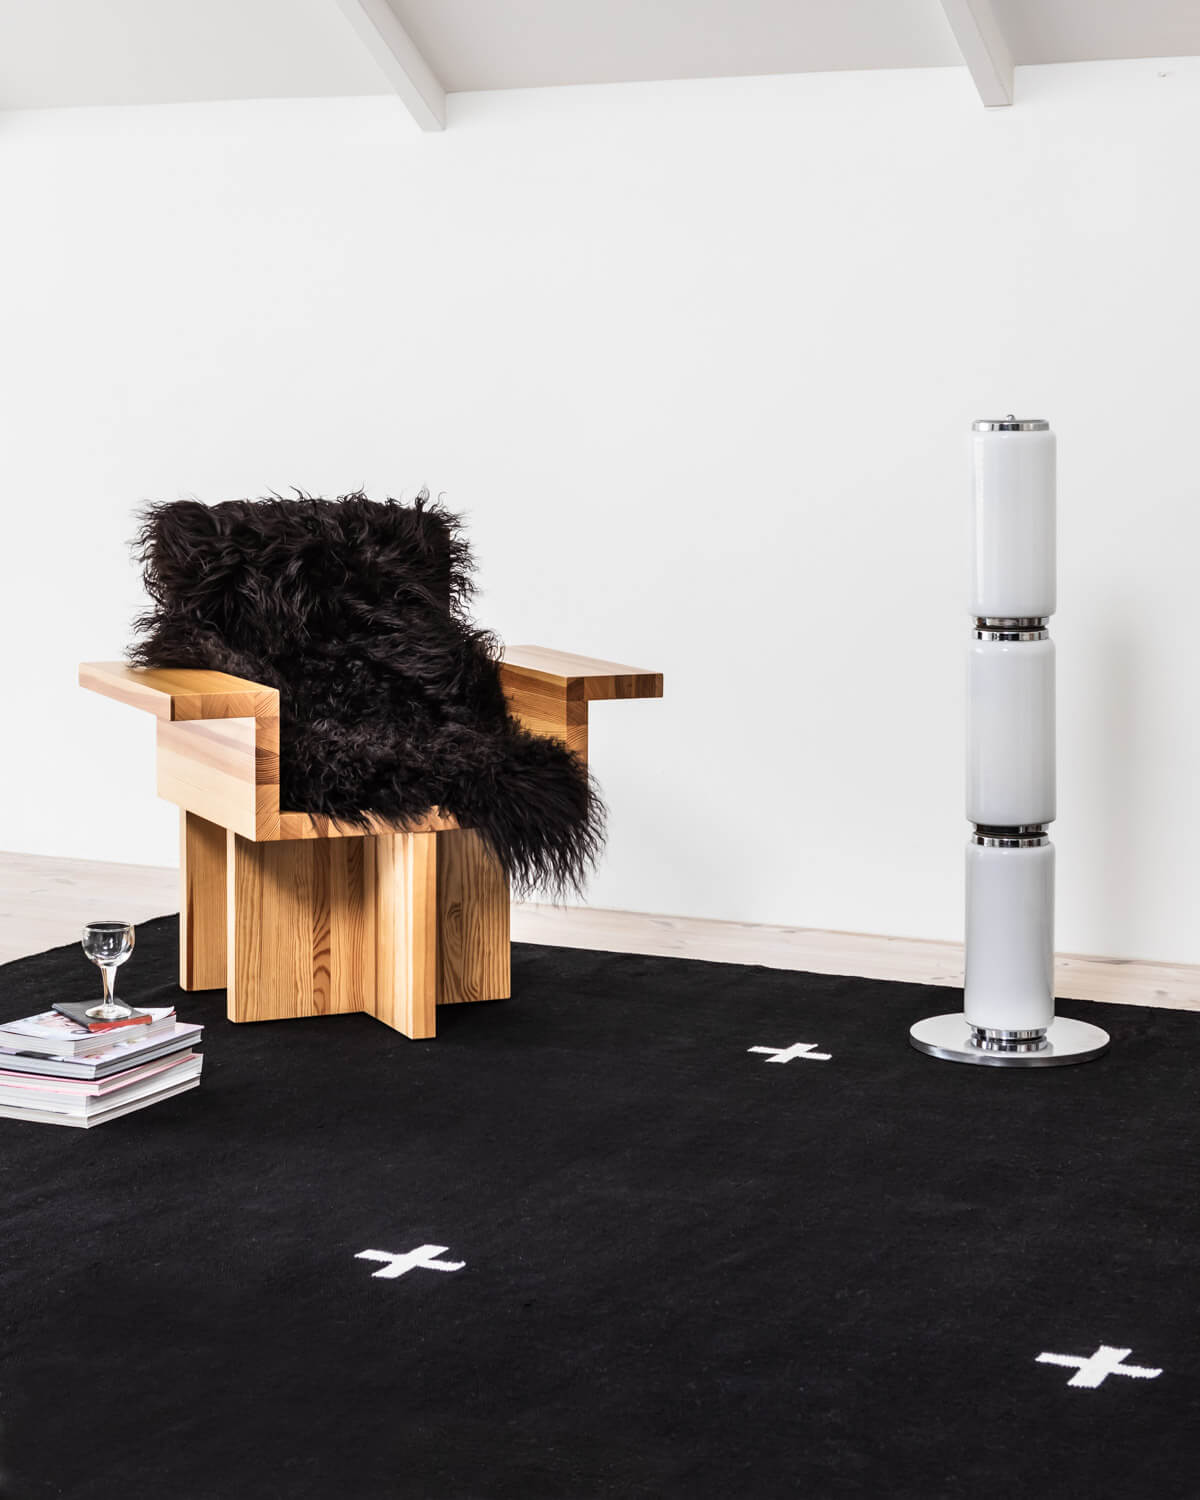 Plus rug in Black displayed together with a sculptural wooden armchair.